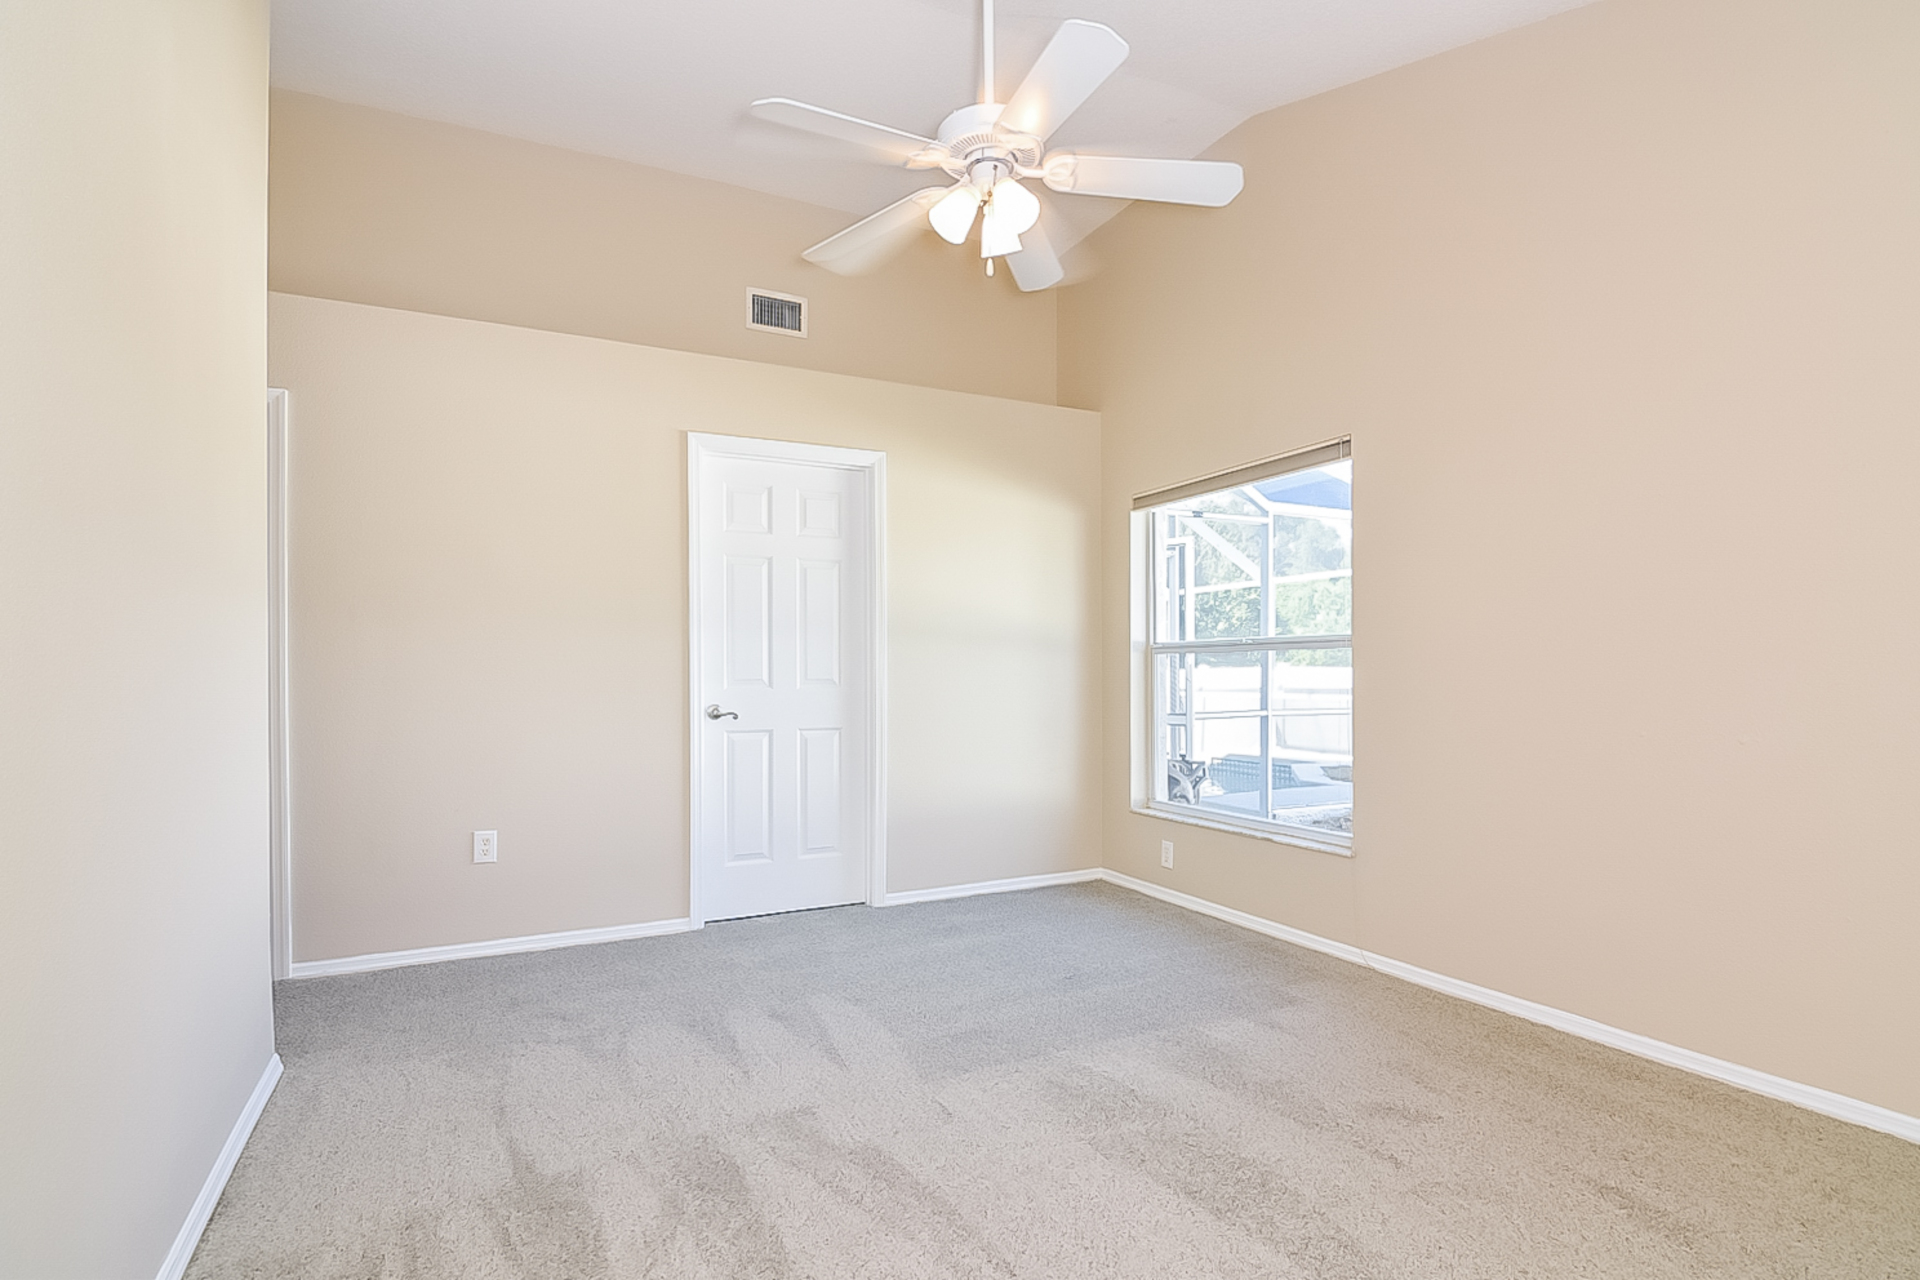 Photo of 10016 Colonnade Drive, Tampa, FL, 33647